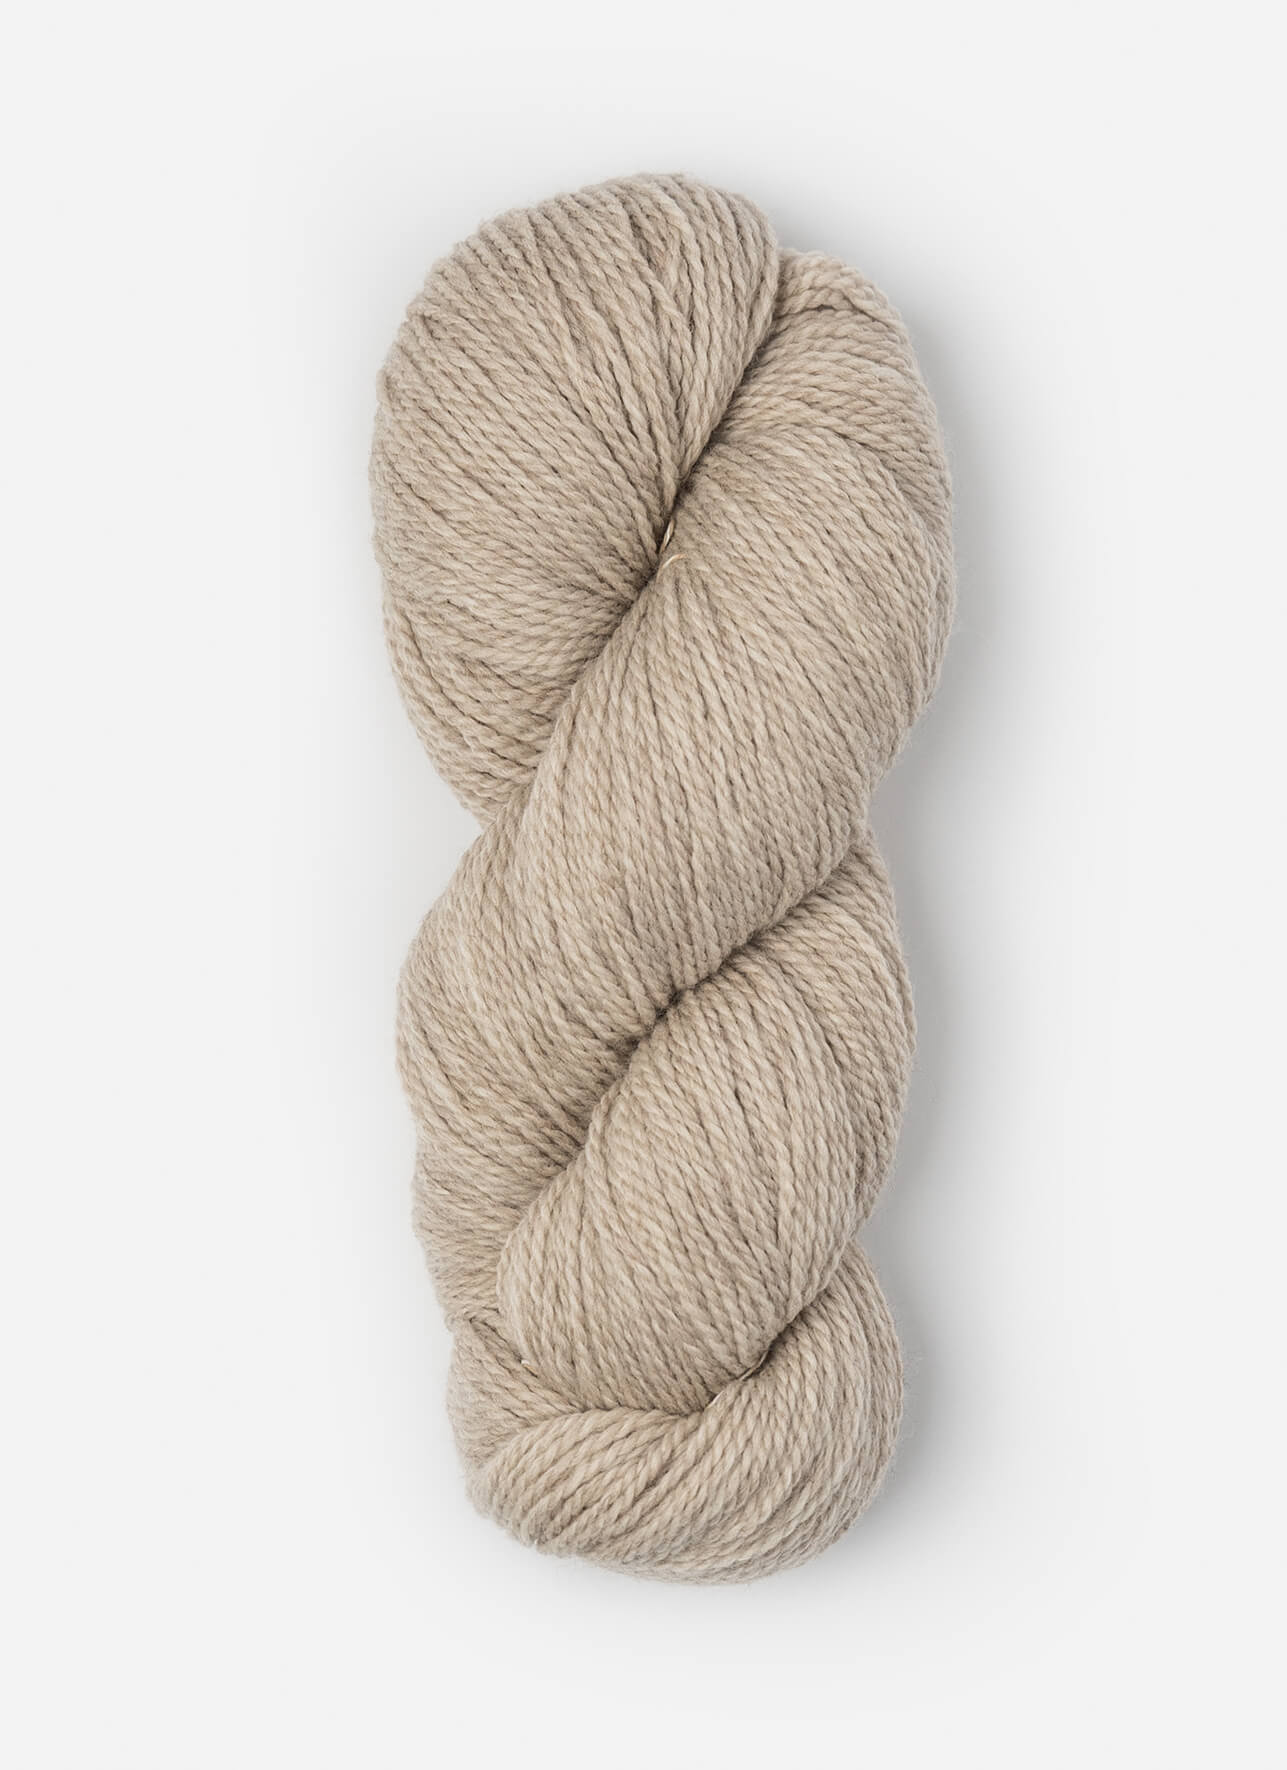 Blue Sky Fibers' Woolstok in 1312L - Drift Wood